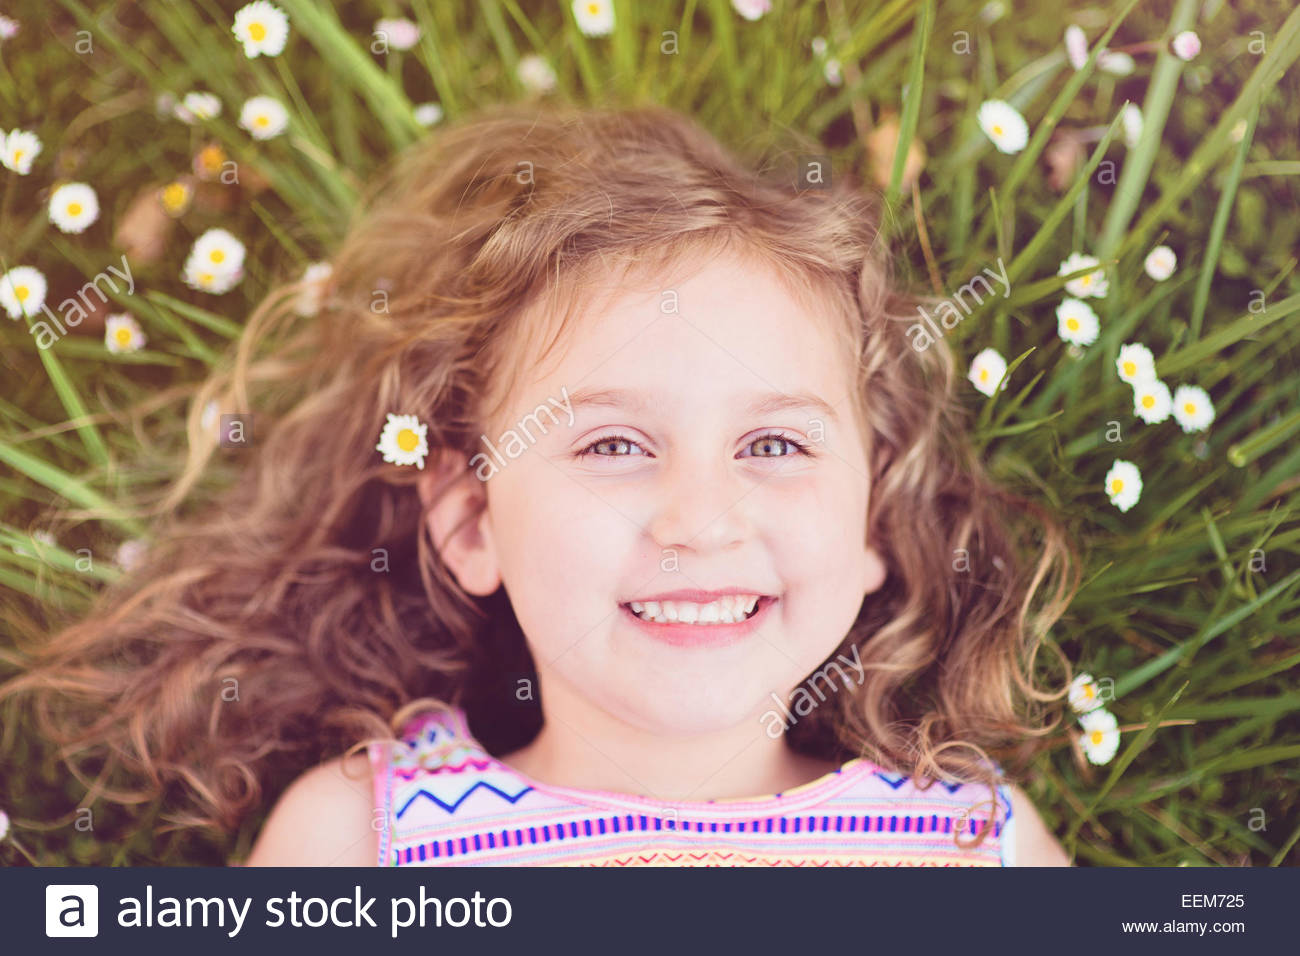 Portrait of smiling girl (4-5) lying in grass - Stock Image